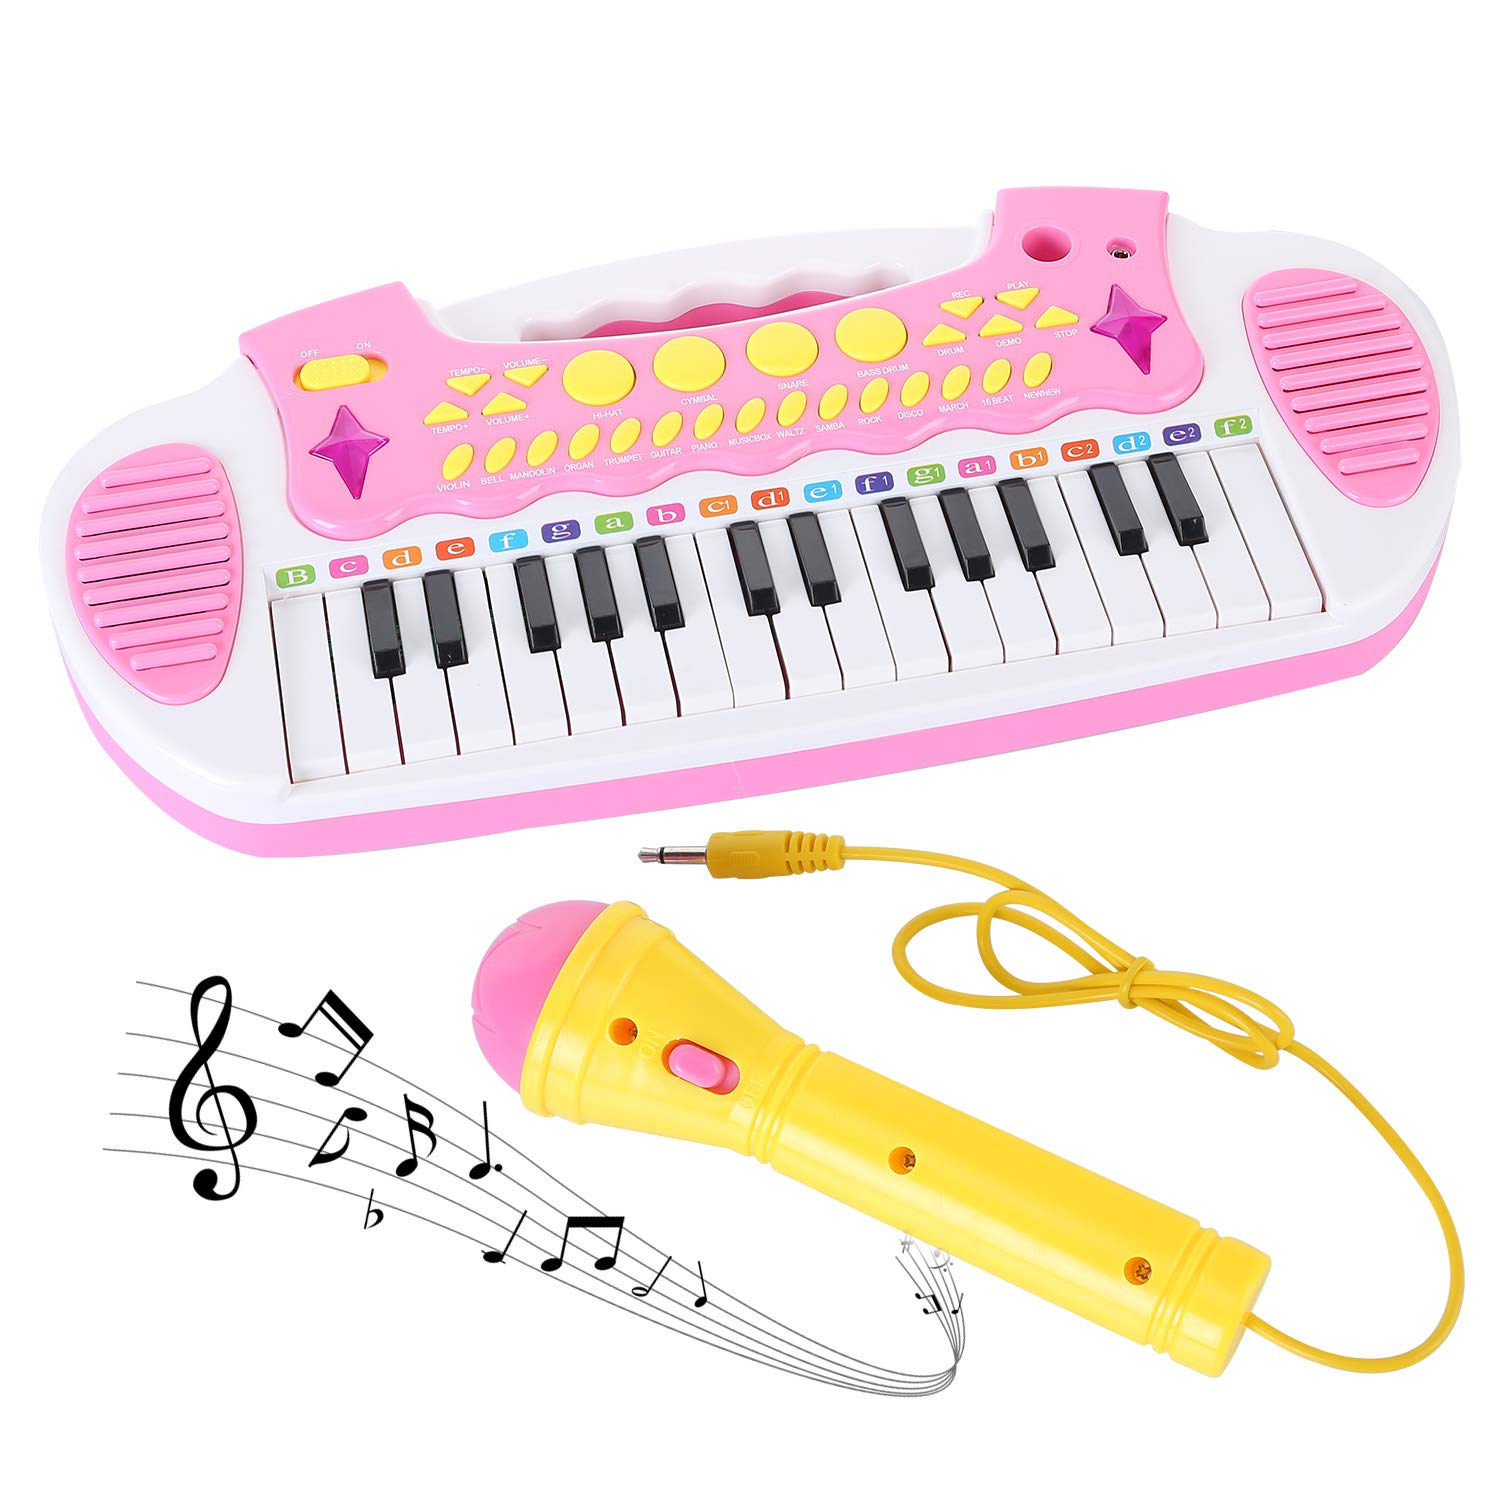 Love&Mini Piano Toy Keyboard for Kids Multifunctional Music Instruments with Microphone for Girls Birthday Gift 3 4 5 Years Old 31 Keys (Pink) by Love&Mini